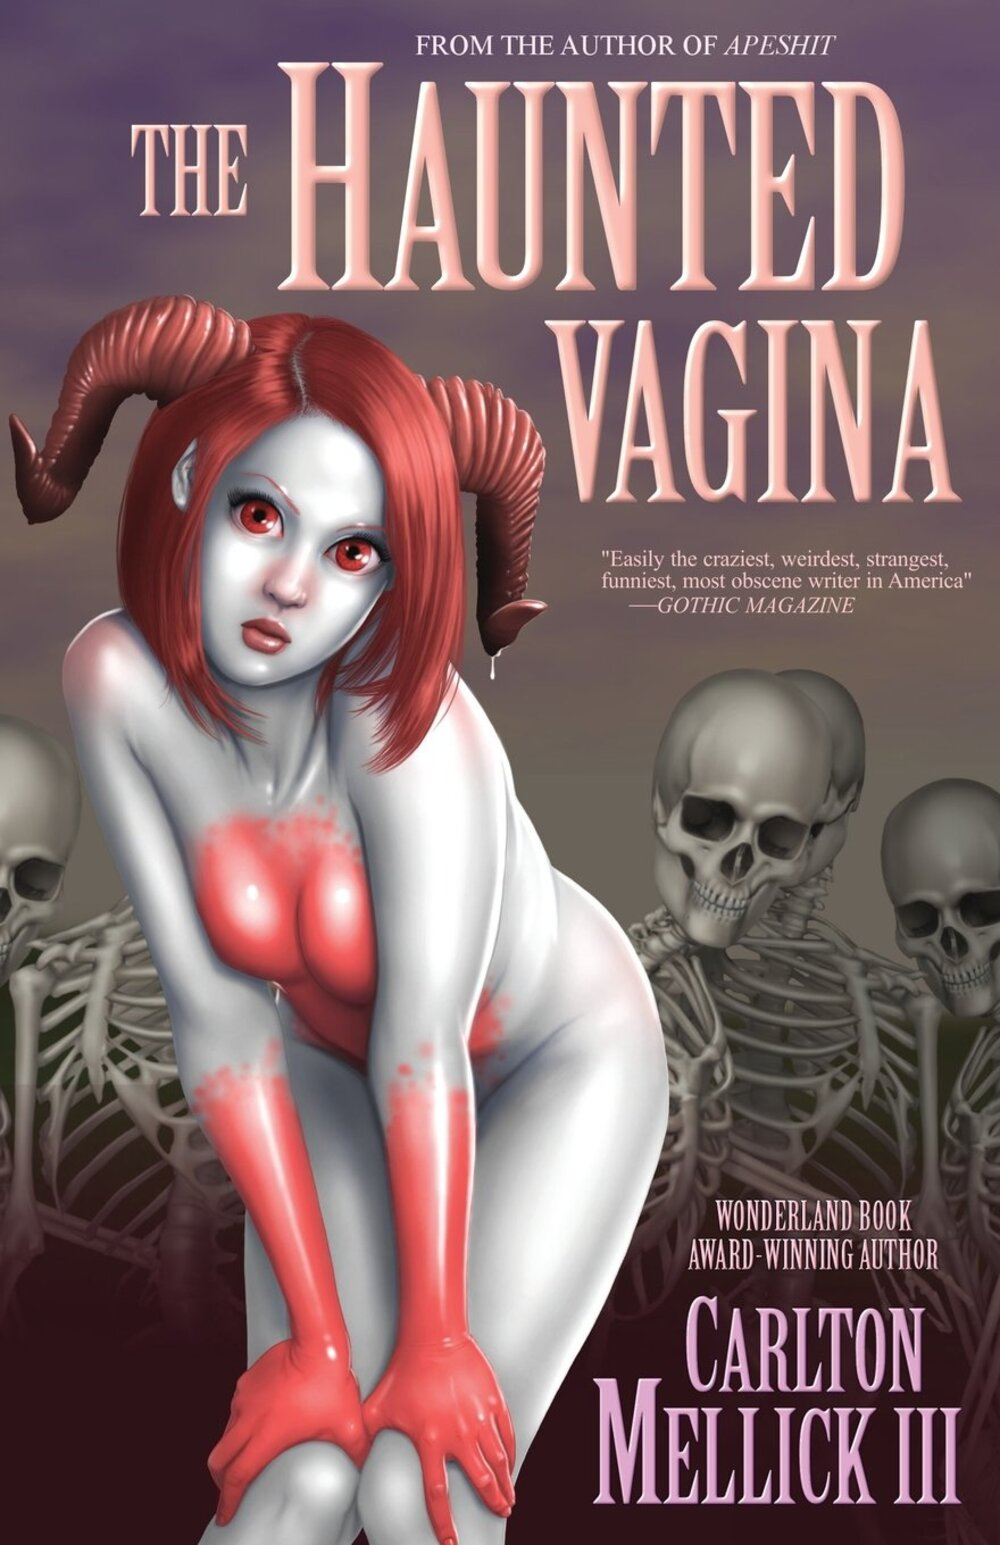 Carlton Mellick III - The Haunted Vagina (2011)